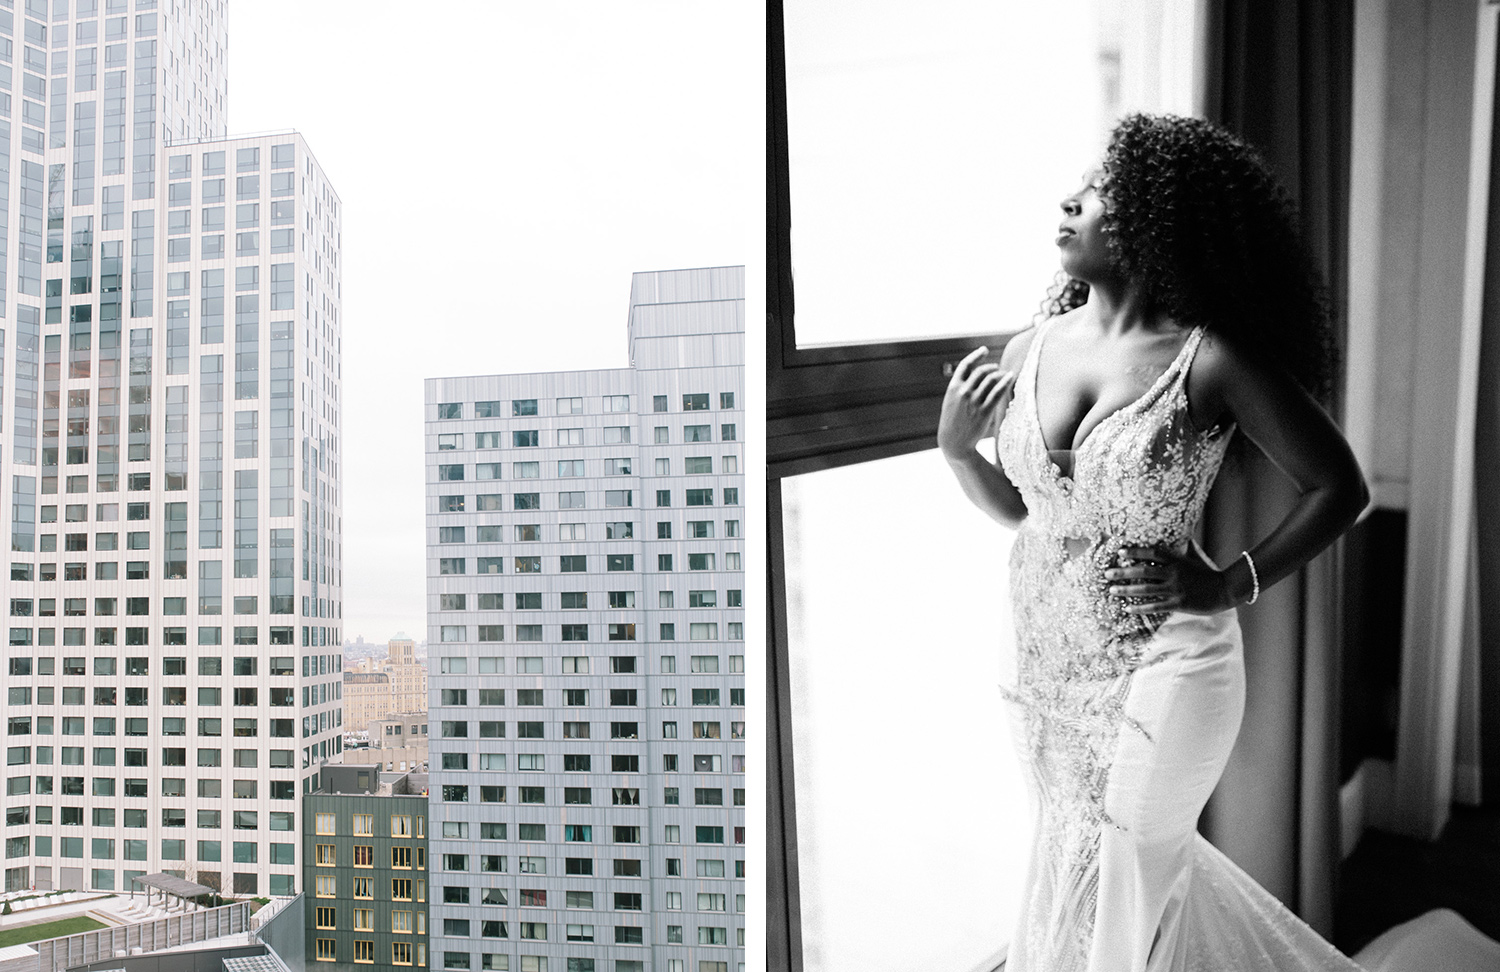 A black bride stands confidently, gazing out a Brooklyn, New York window on her same sex wedding day